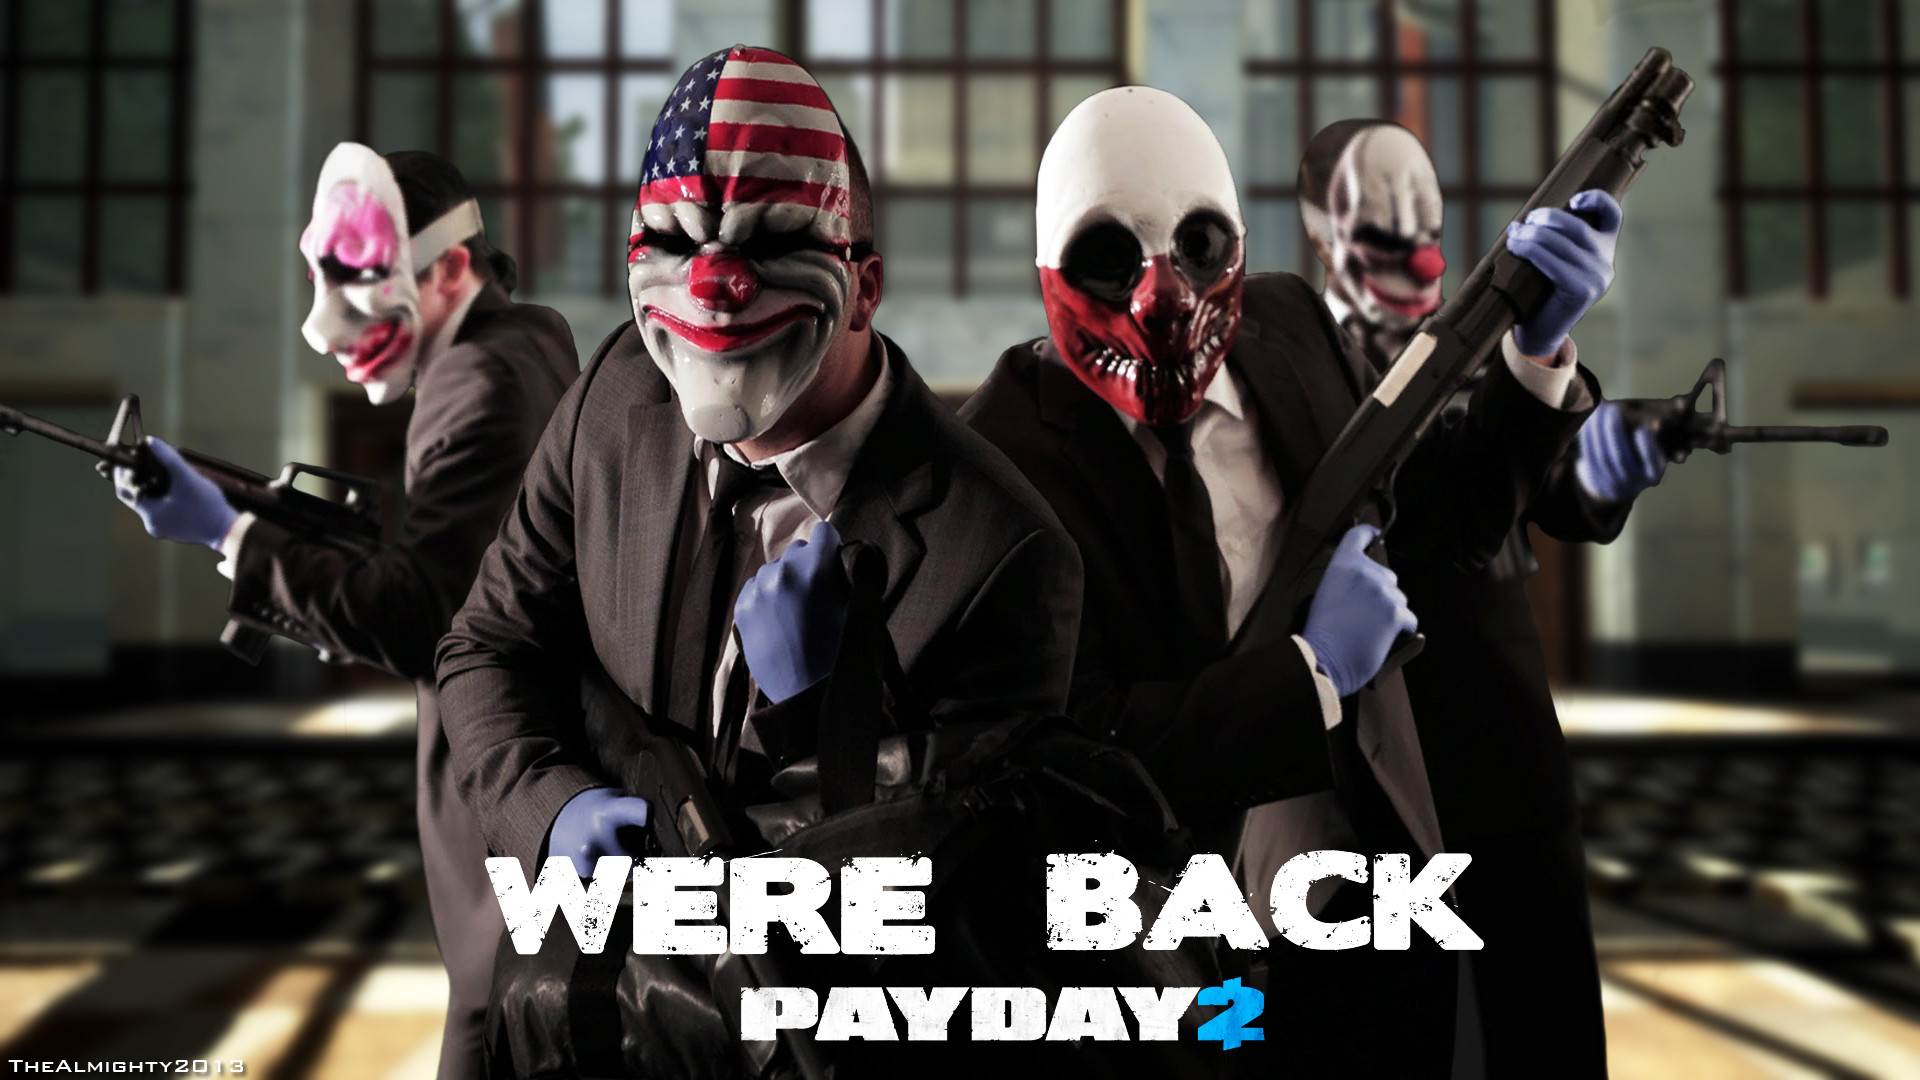 payday 2 wallpapers « GamingBolt.com: Video Game News, Reviews ...